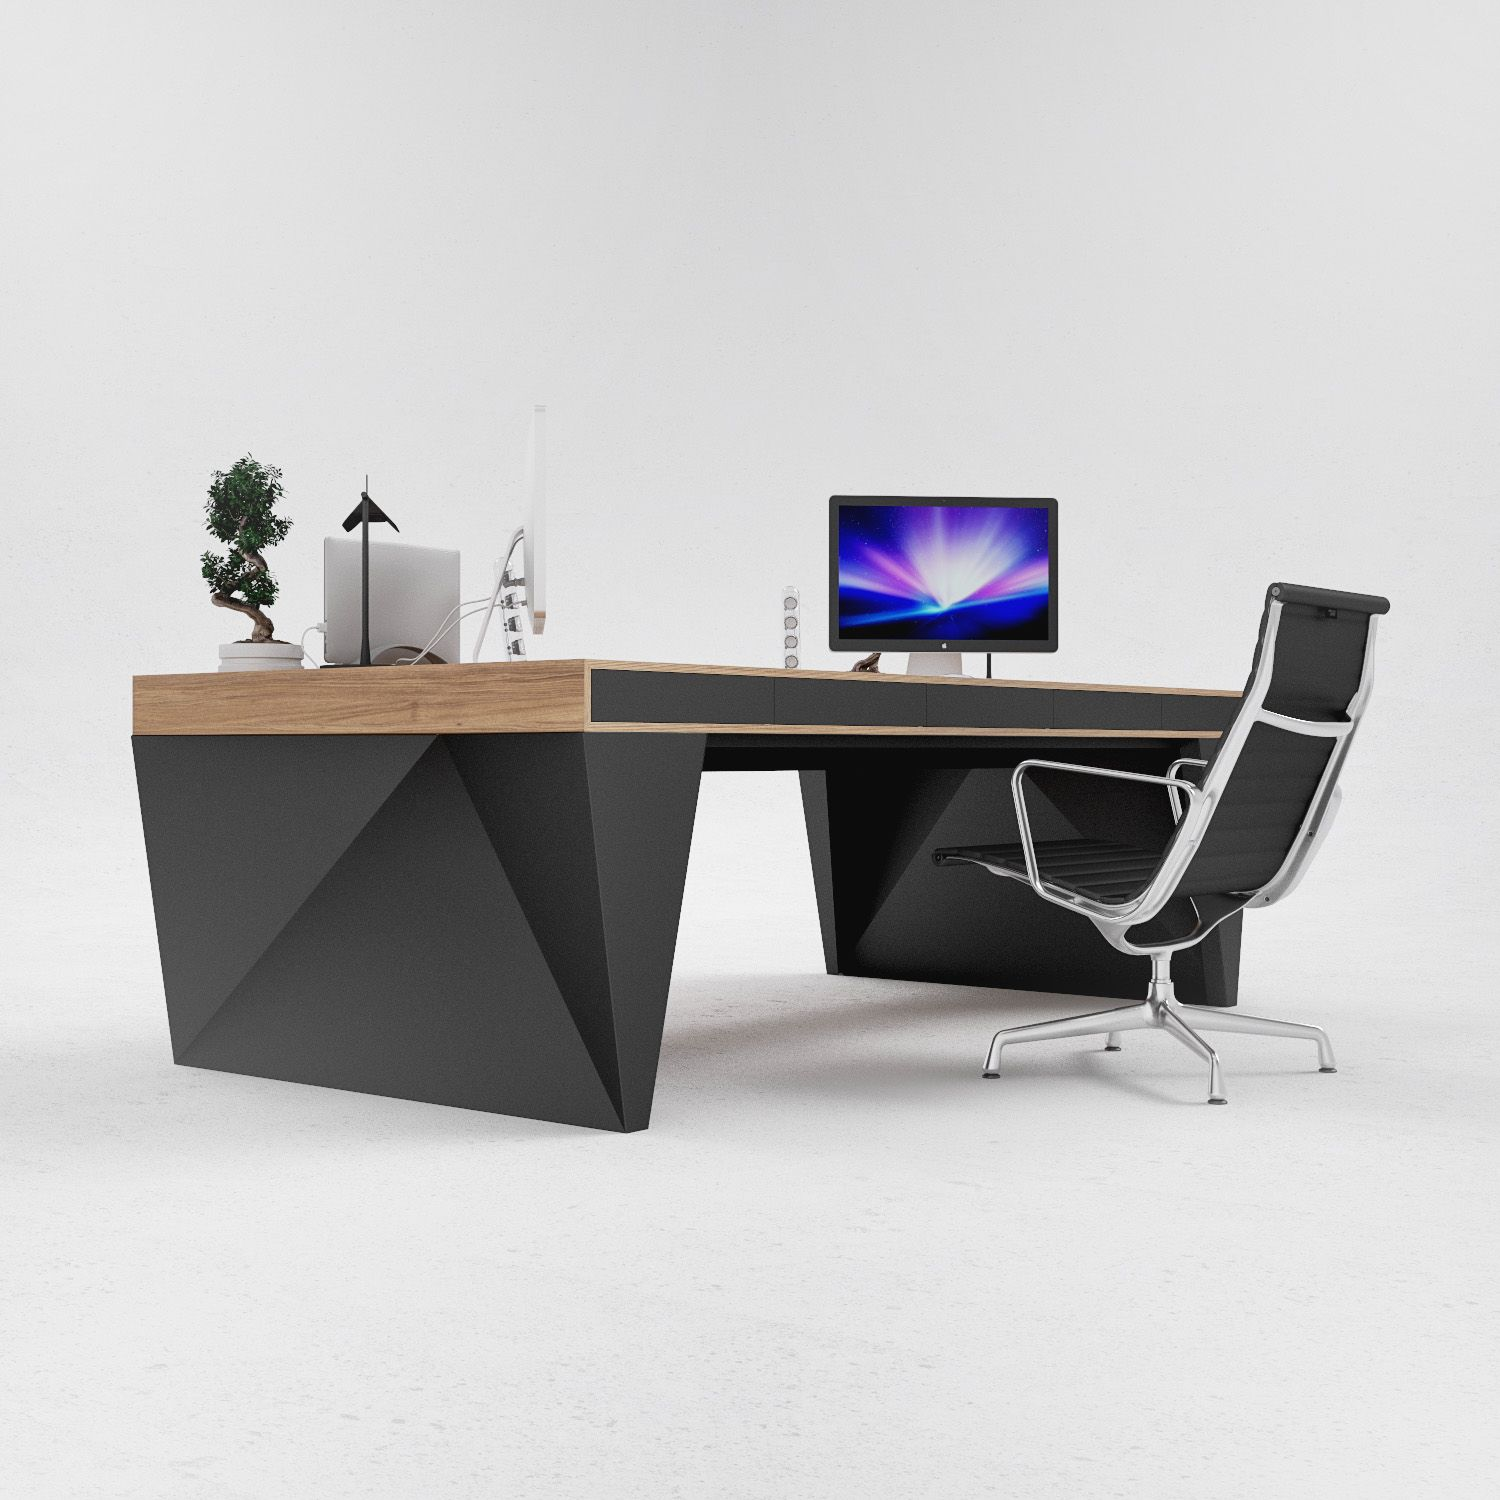 OS1 executive desk Design bureau ODESD2